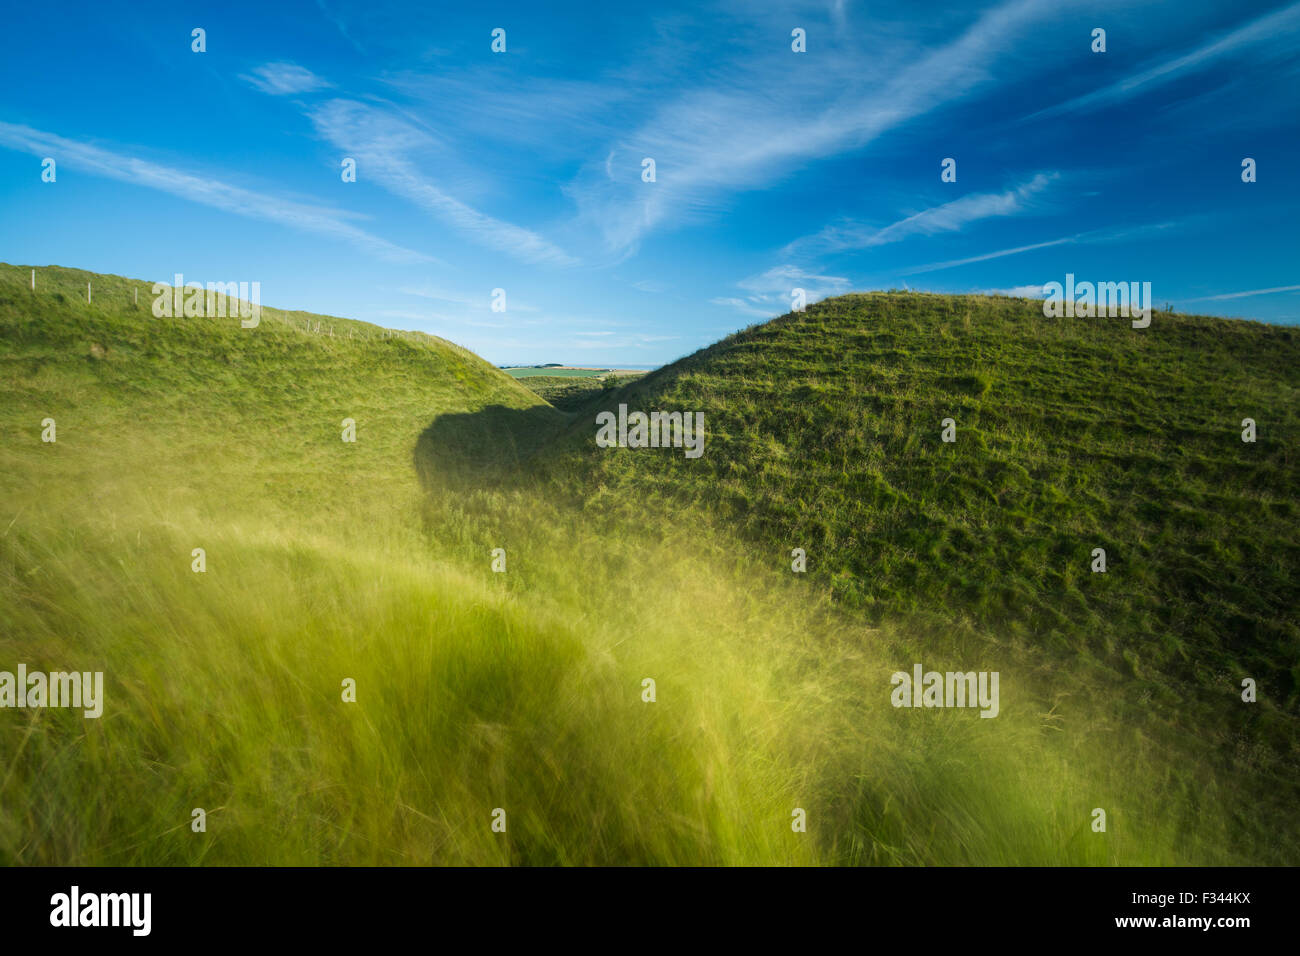 the western ramparts of Maiden Castle, an Iron Age hill fort near Dorchester, Dorset, England, UK - Stock Image